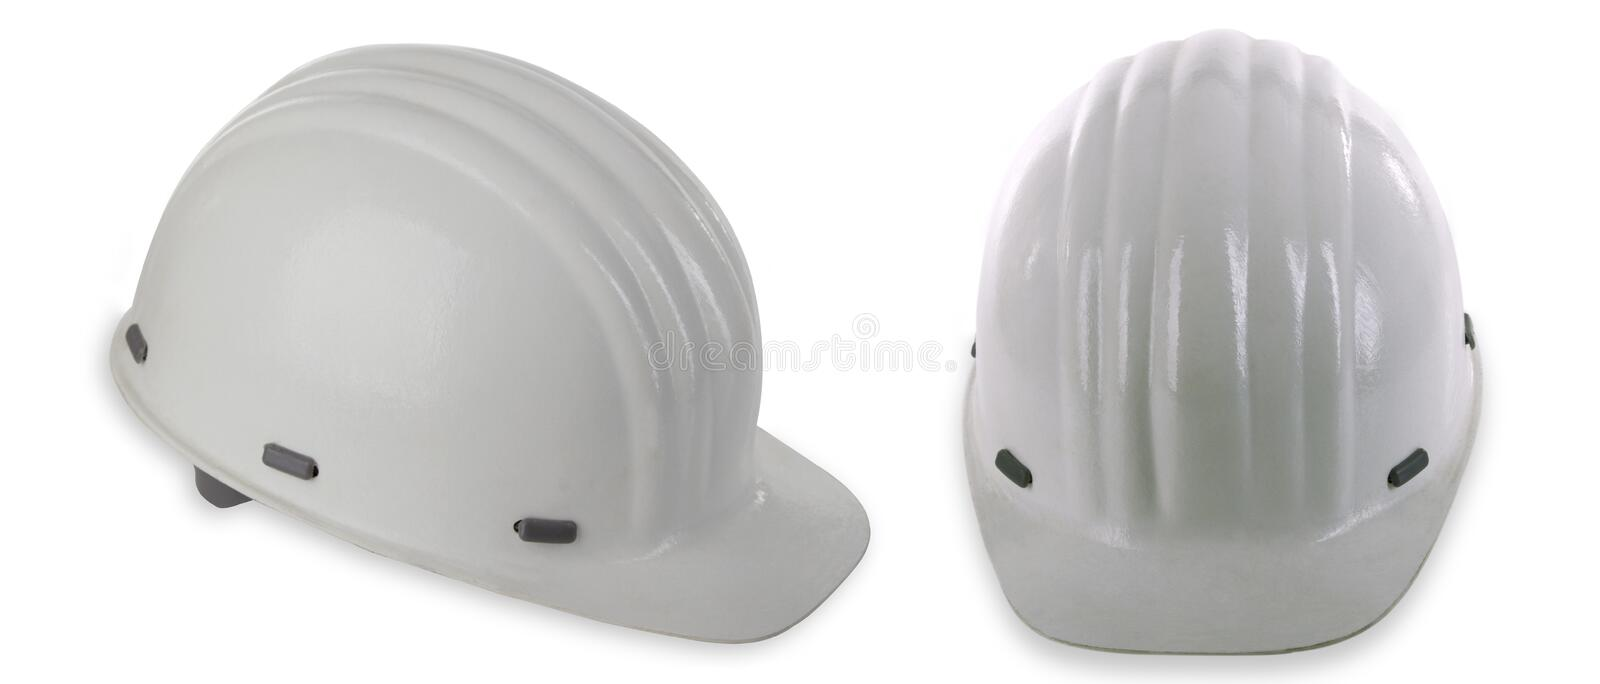 Casque antichoc images stock